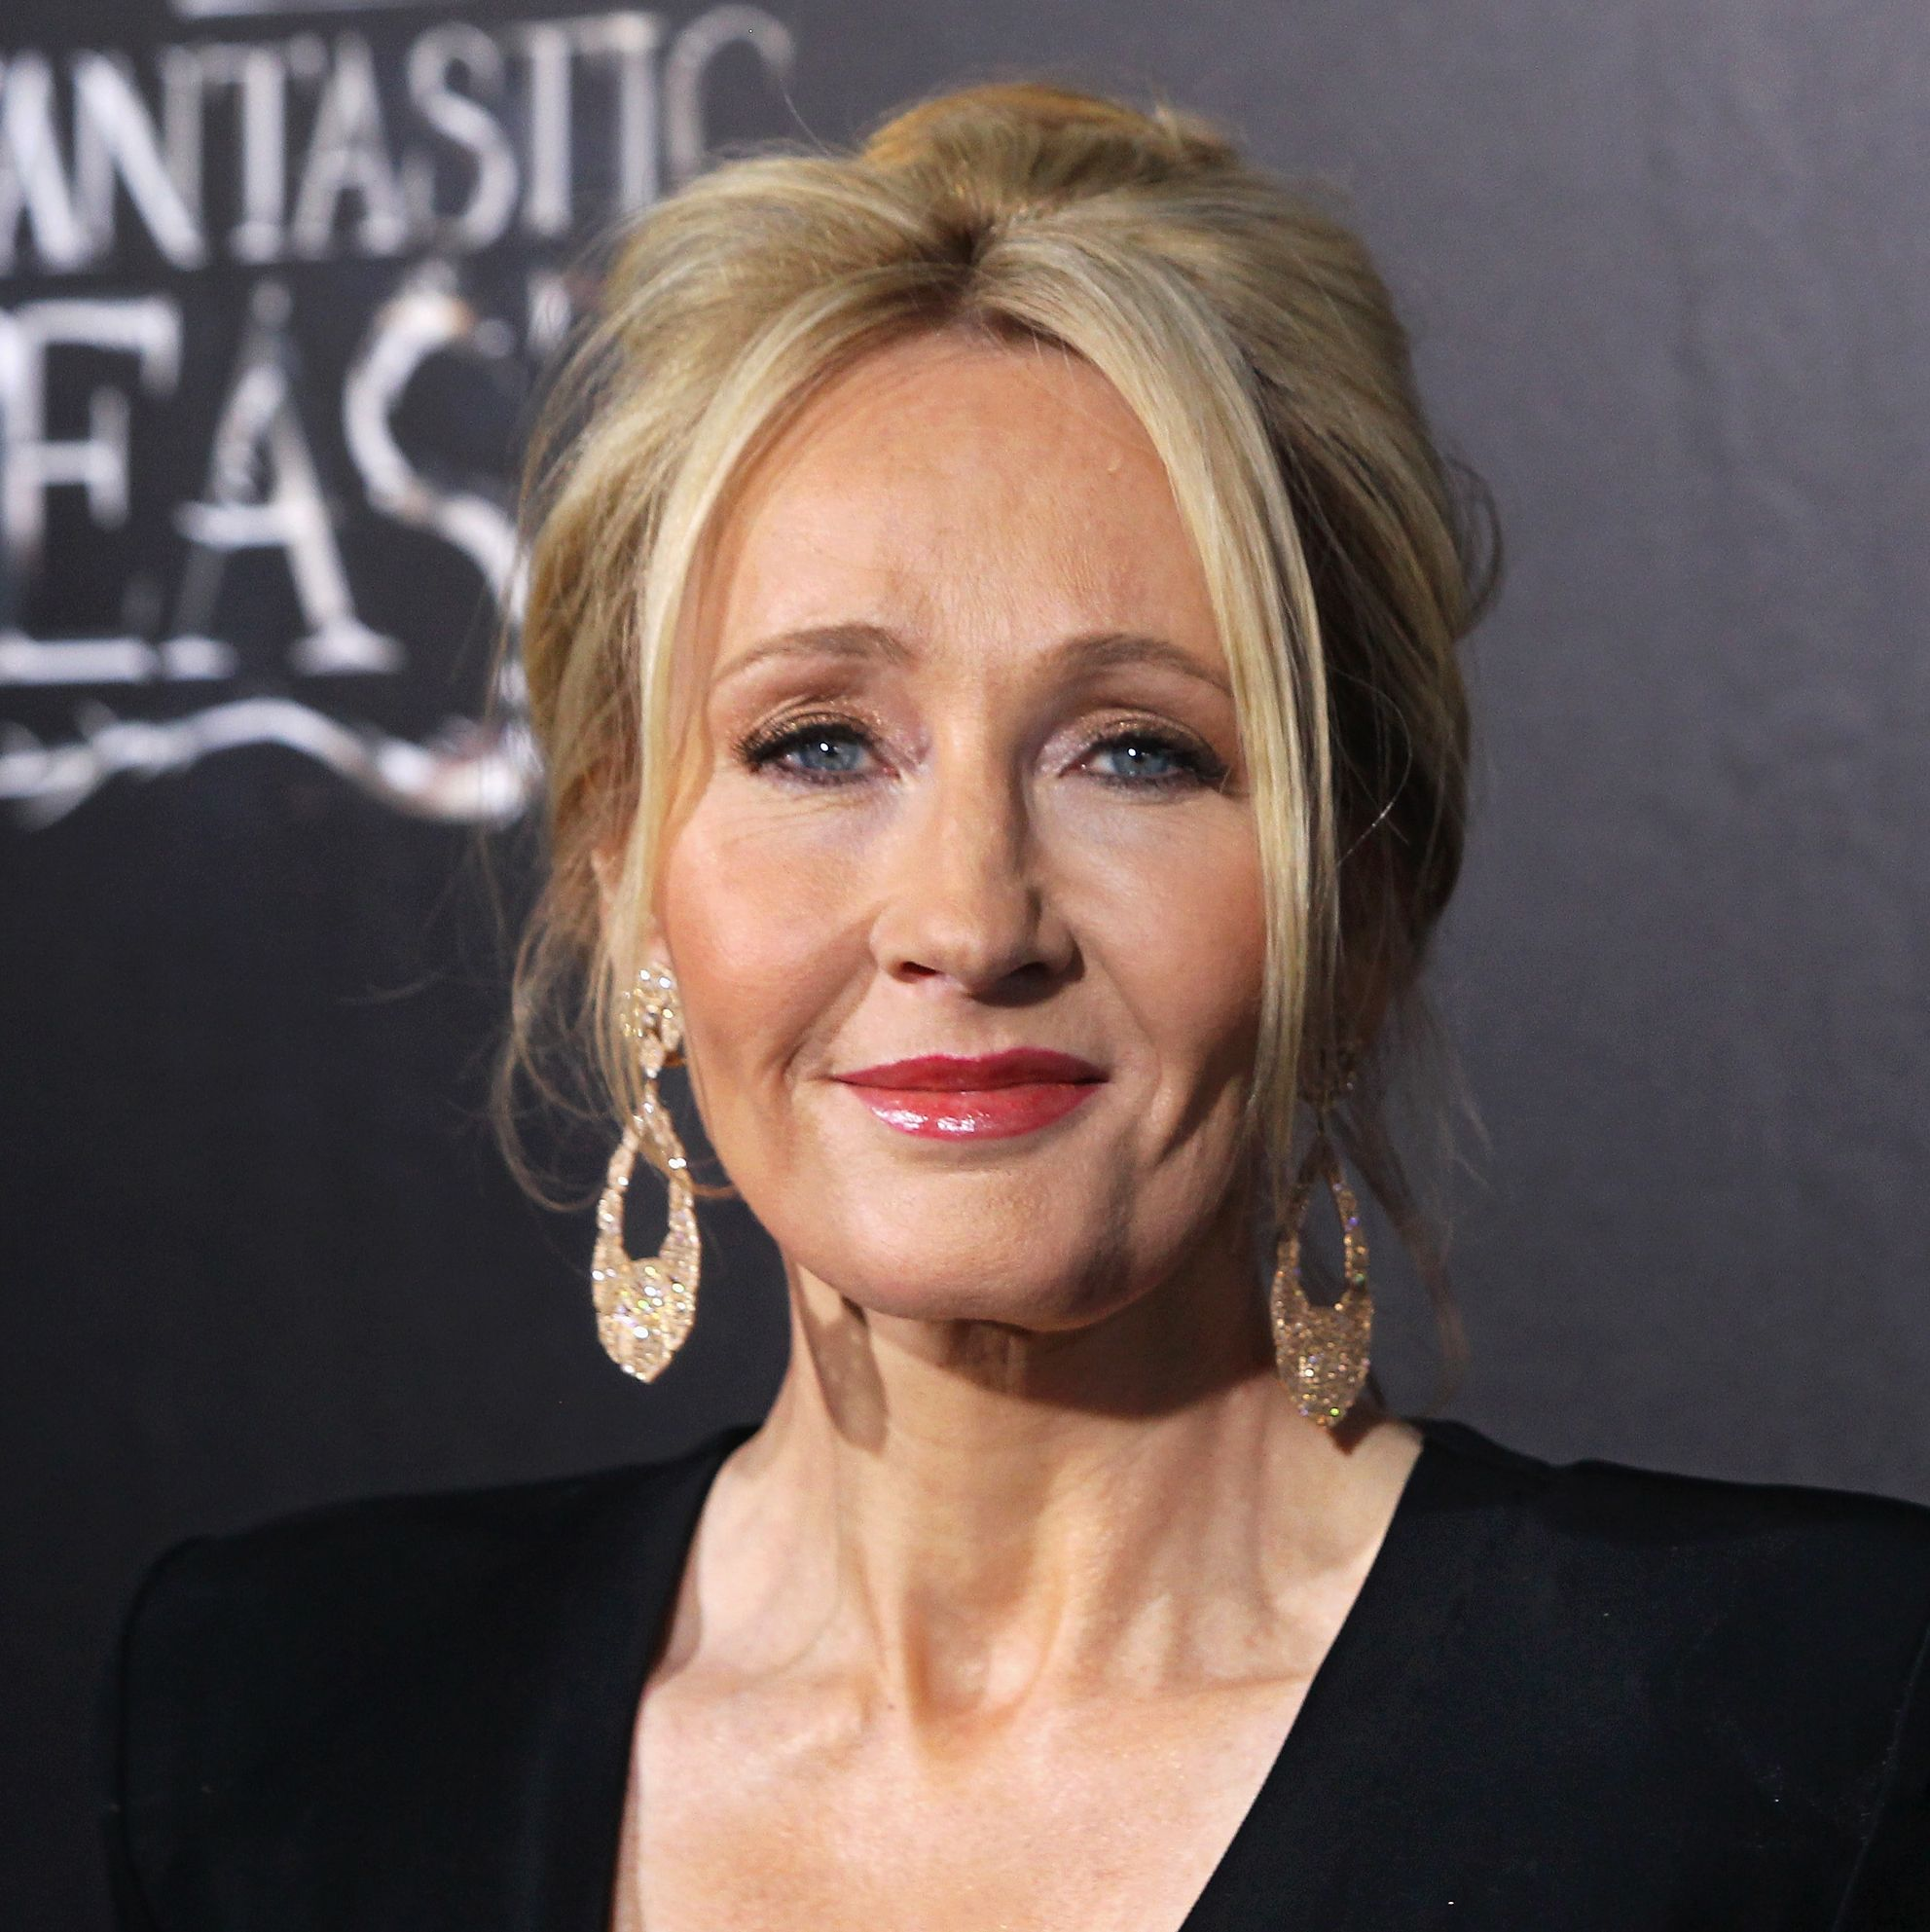 Harry Potter fans aren't happy with JK Rowling's comments on Dumbledore and Grindelwald's relationship